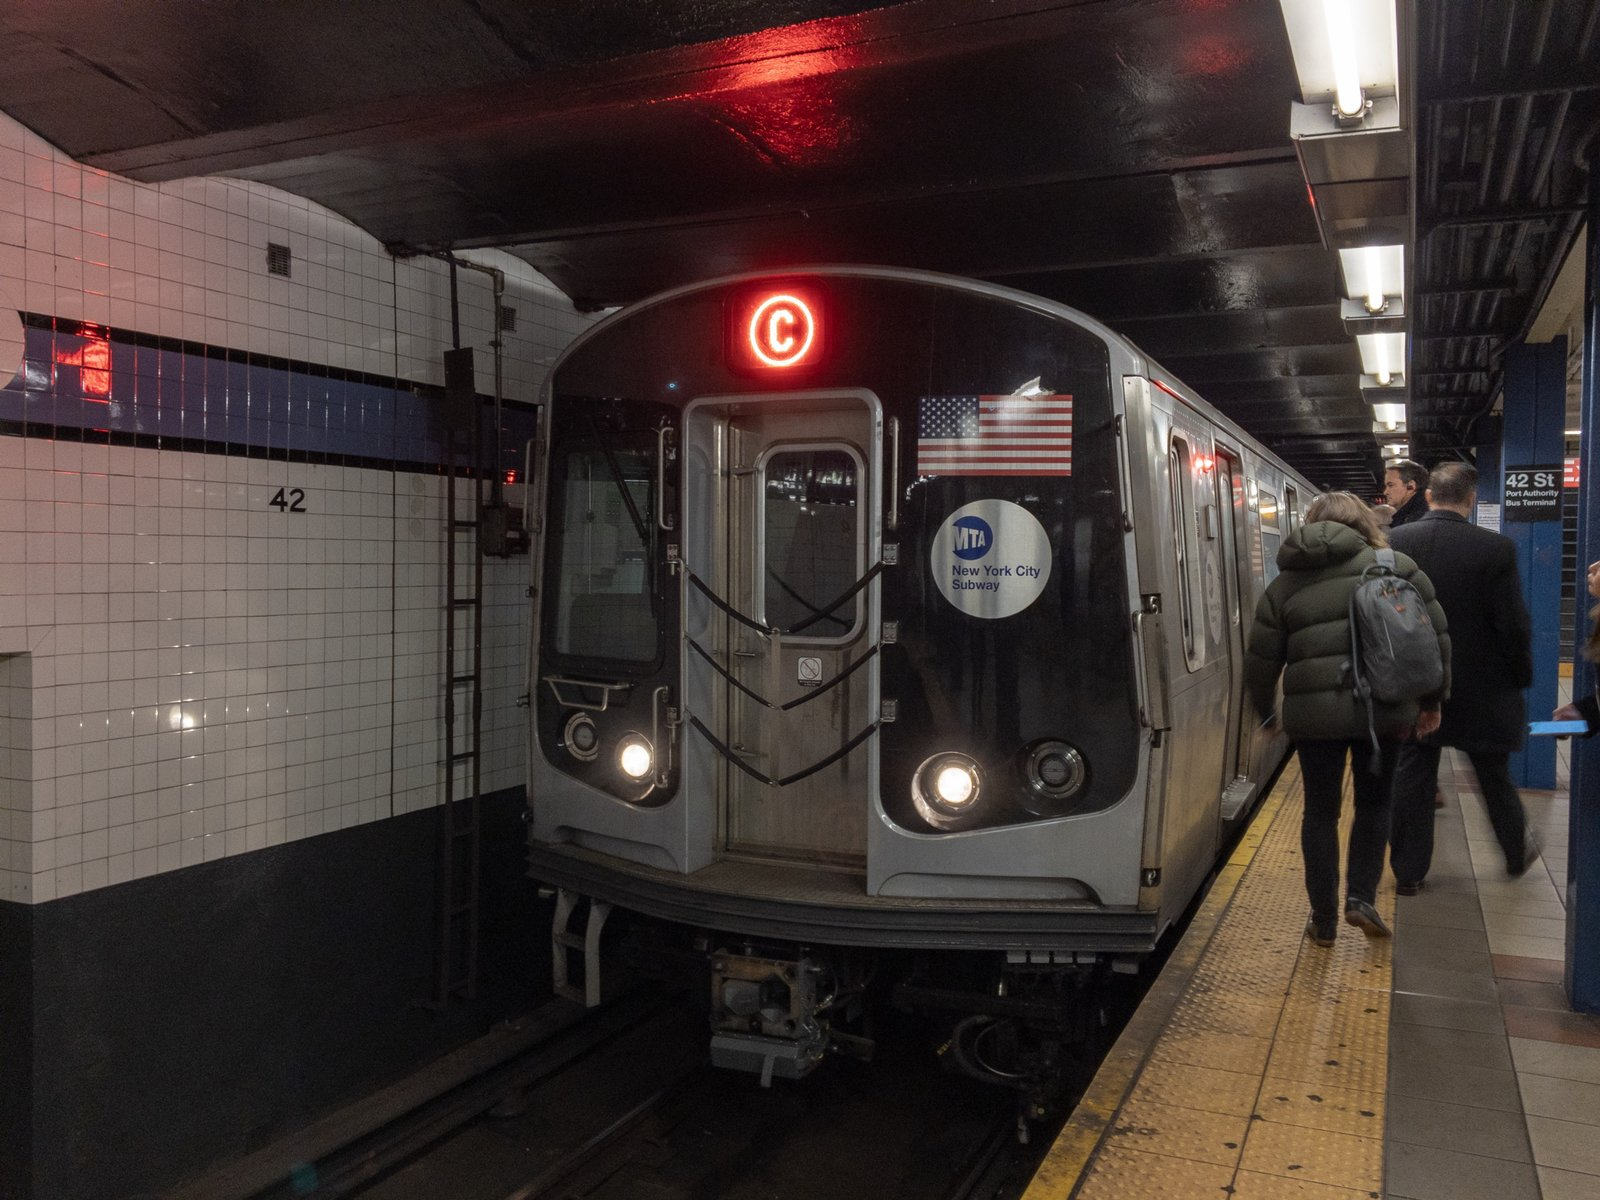 R179 C Train at 42 St